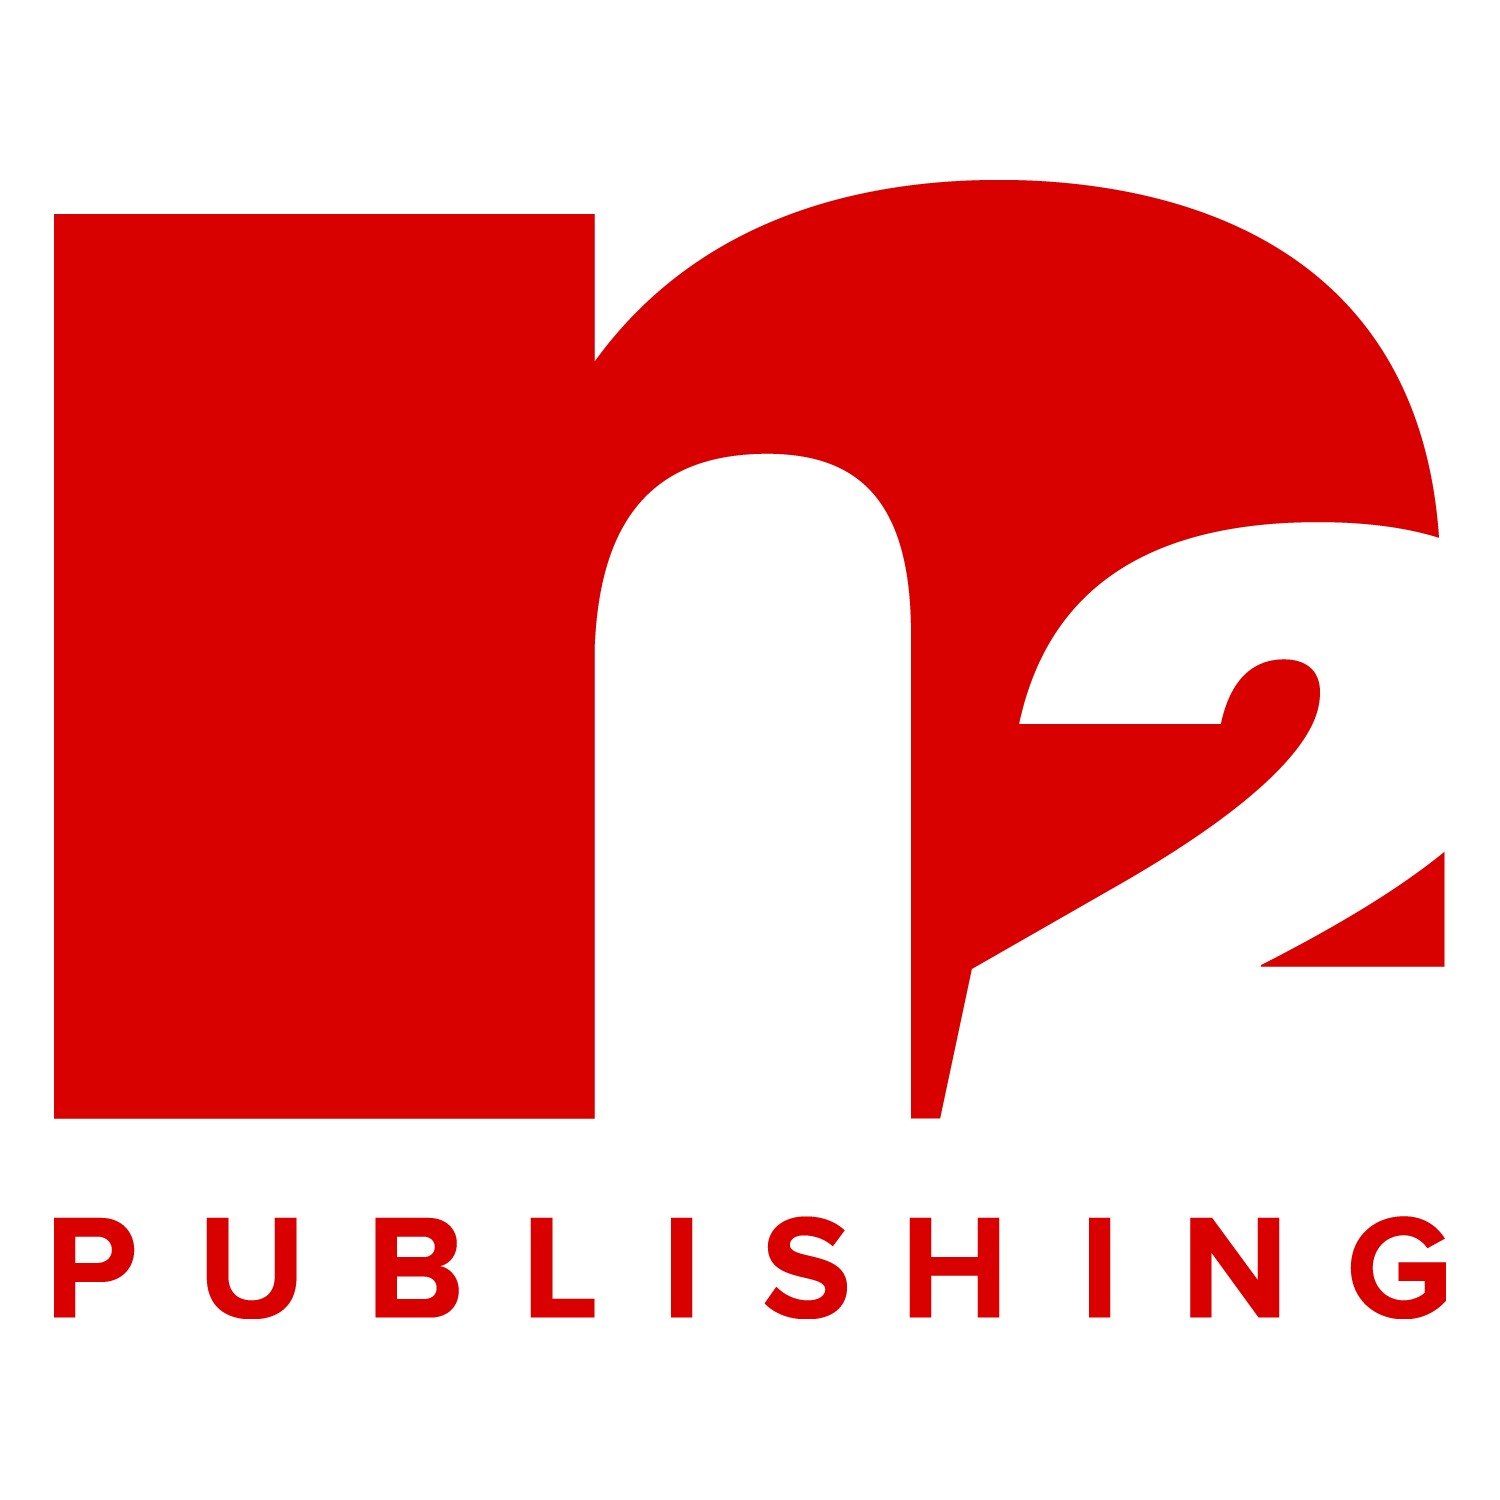 N2 Publishing Attracts Attention From Another Best Workplaces List